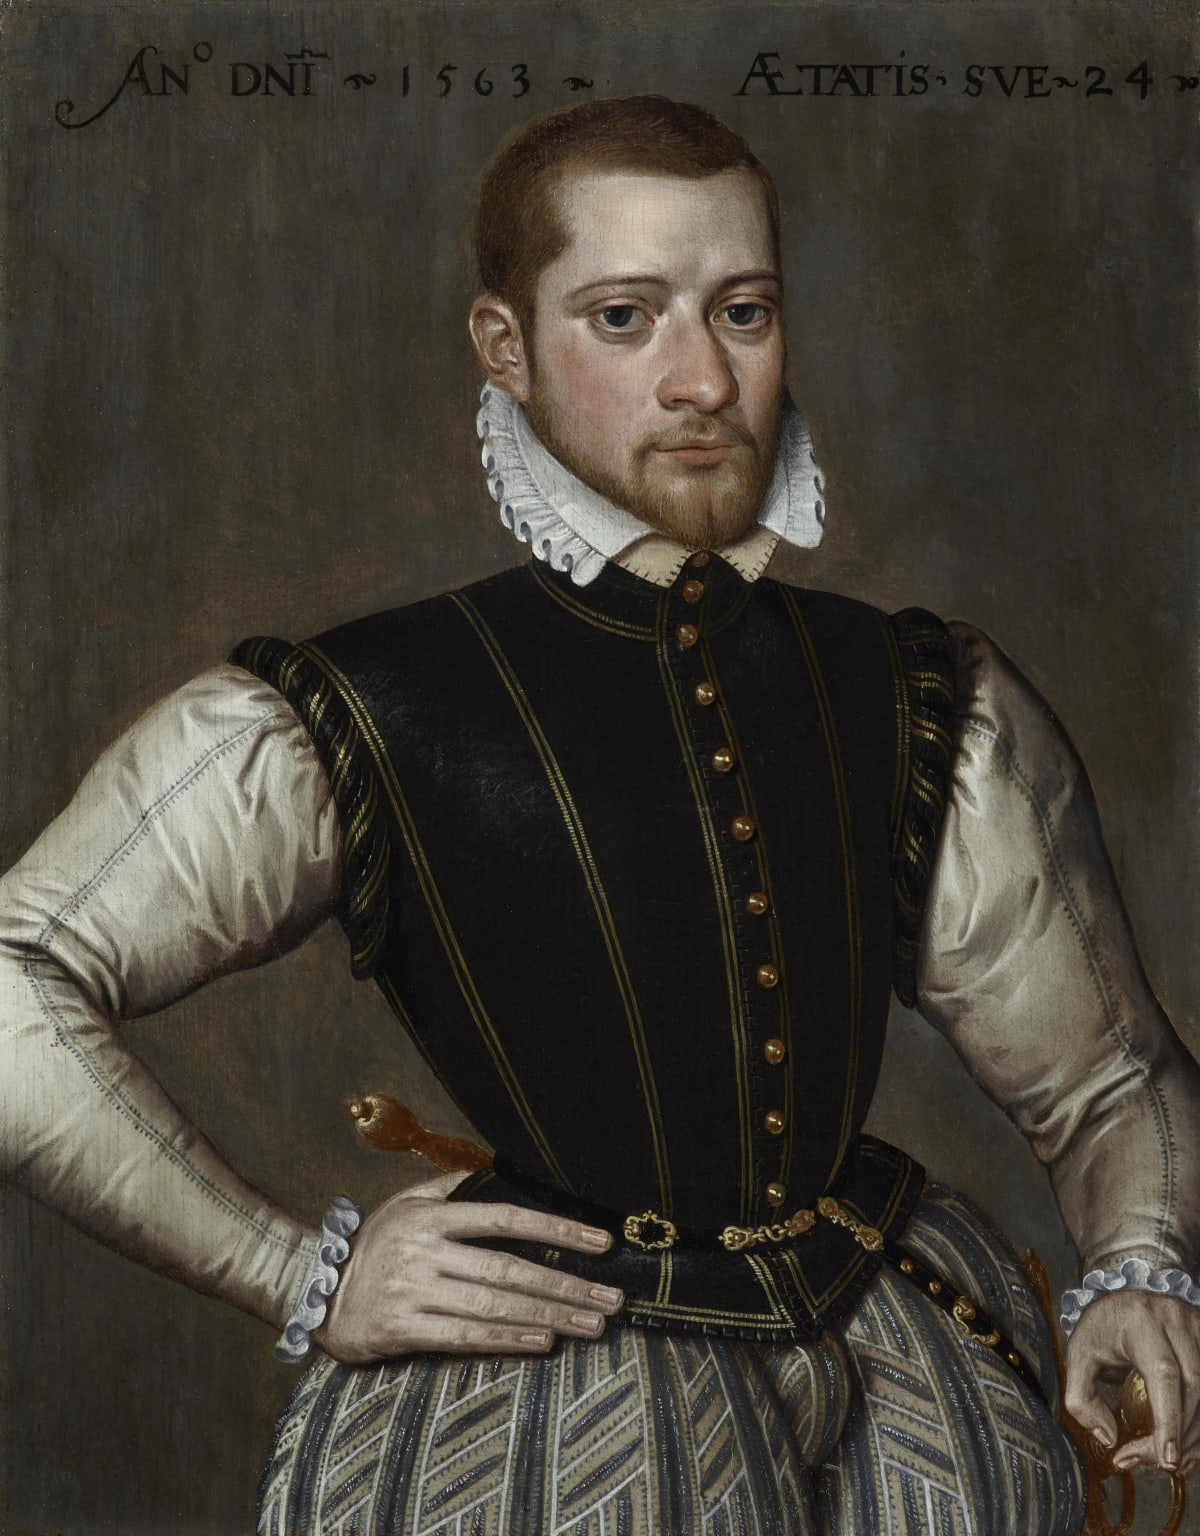 Antonius Claeissens (1541/2 – 1613) Robert van Belle, Lord of Schonewalle (c.1539/40 – c.1572) , 1563 Oil on panel 14 x 10 7/8 in. (35.6 x 27.8 cm.)